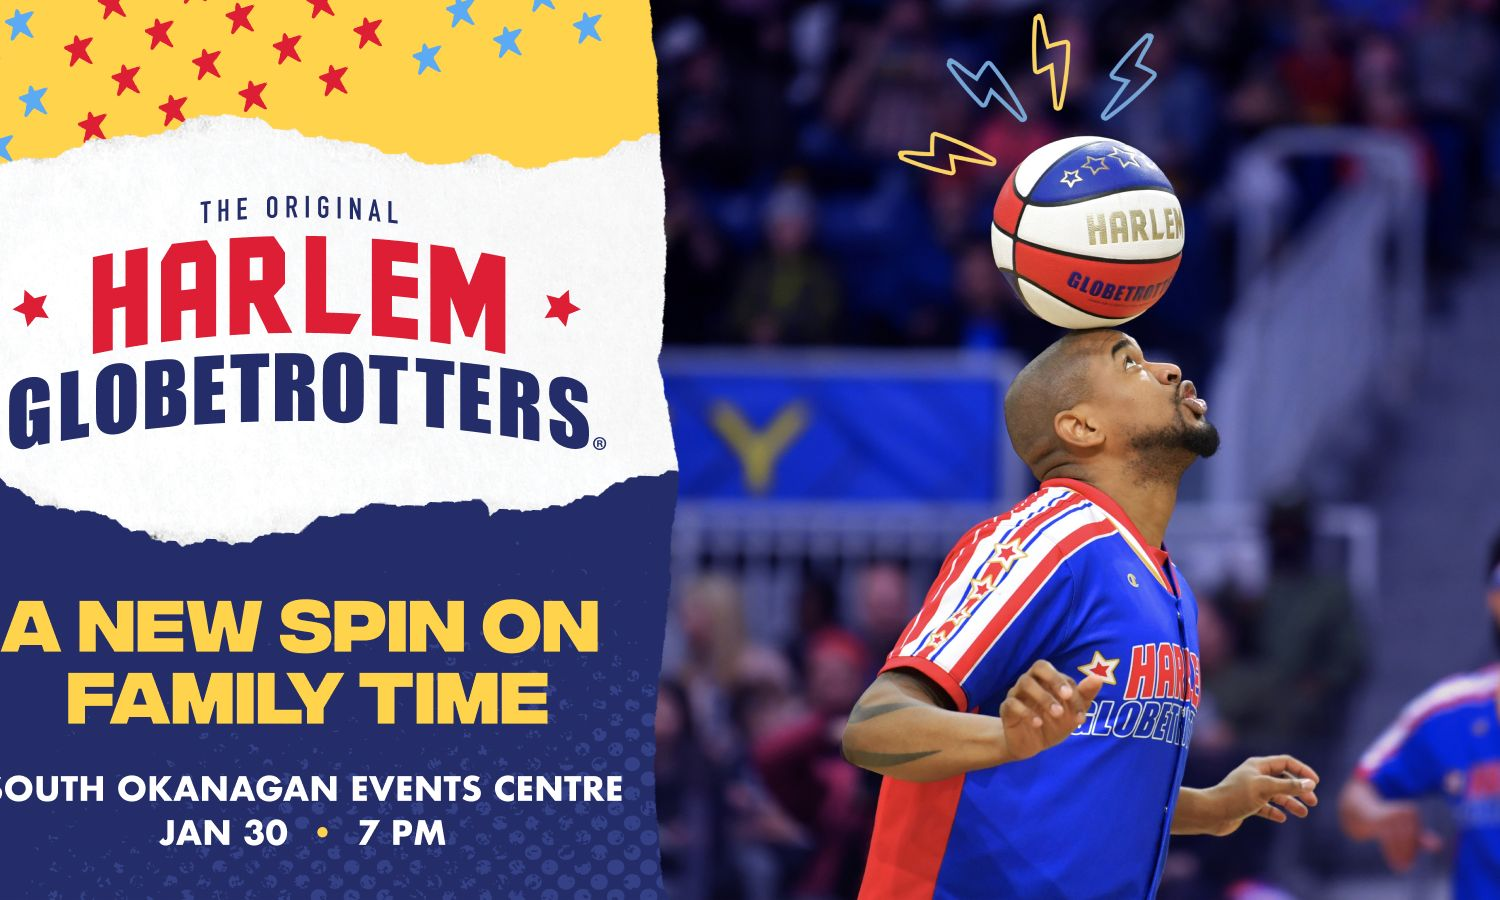 Harlem Globetrotters - Pushing the Limits - Dan Jones